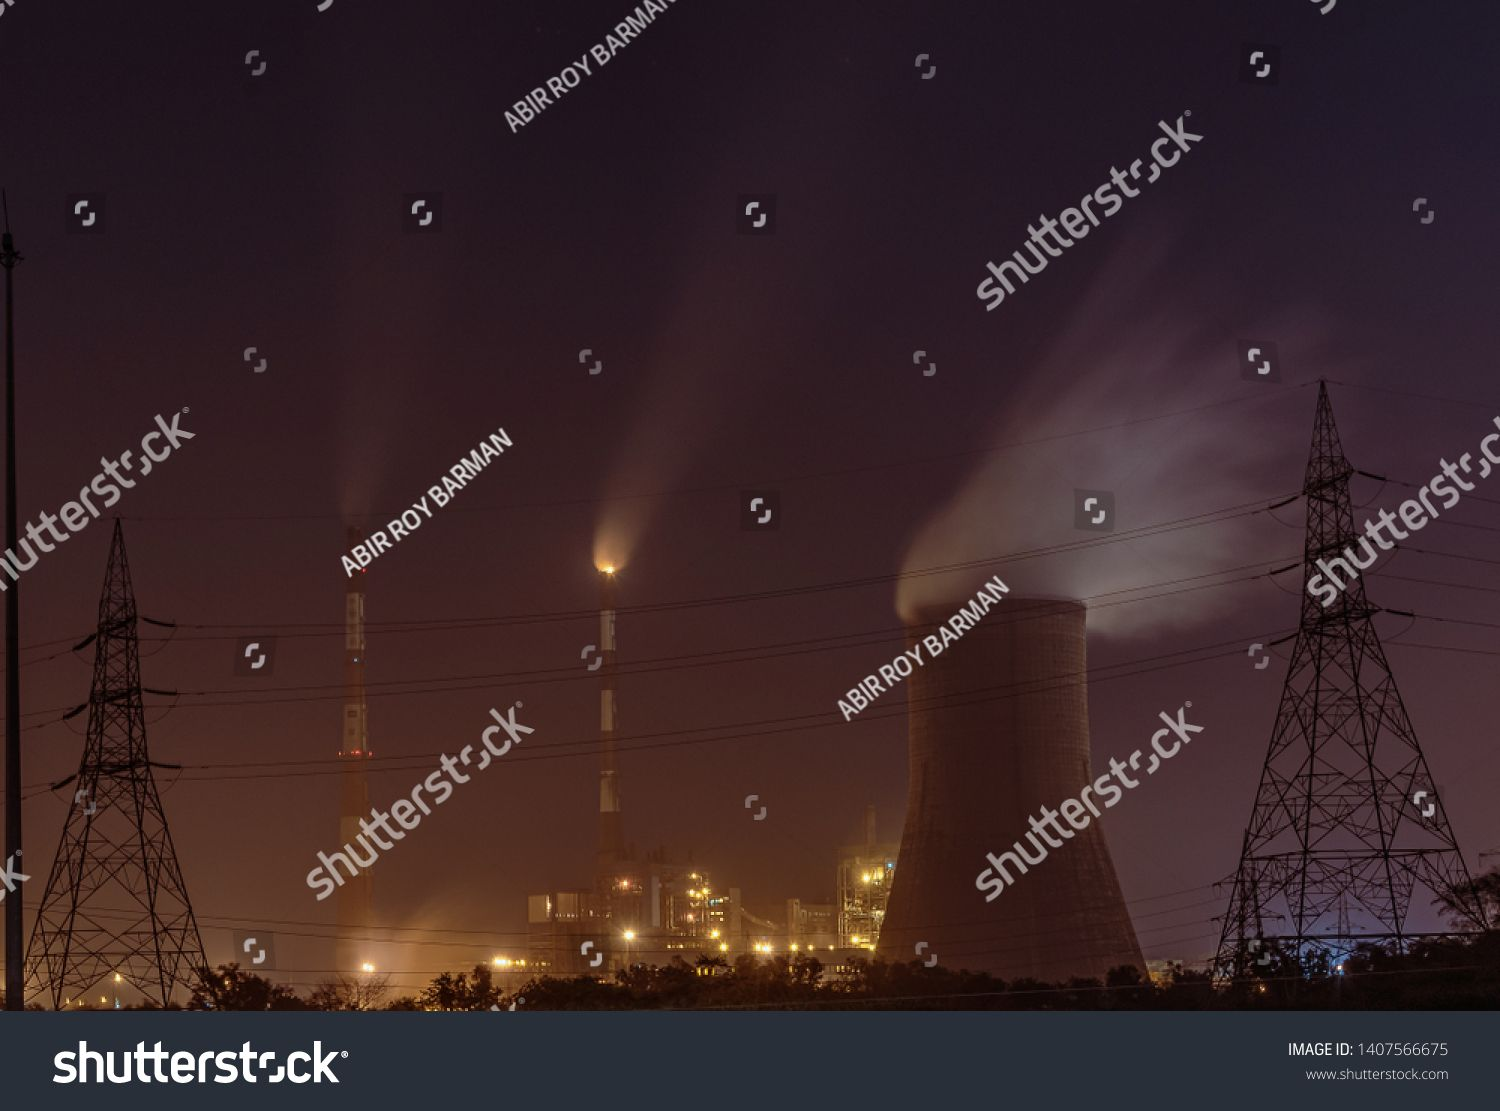 Photo Of Power Plant With Cooling Tower And Chimney At Night